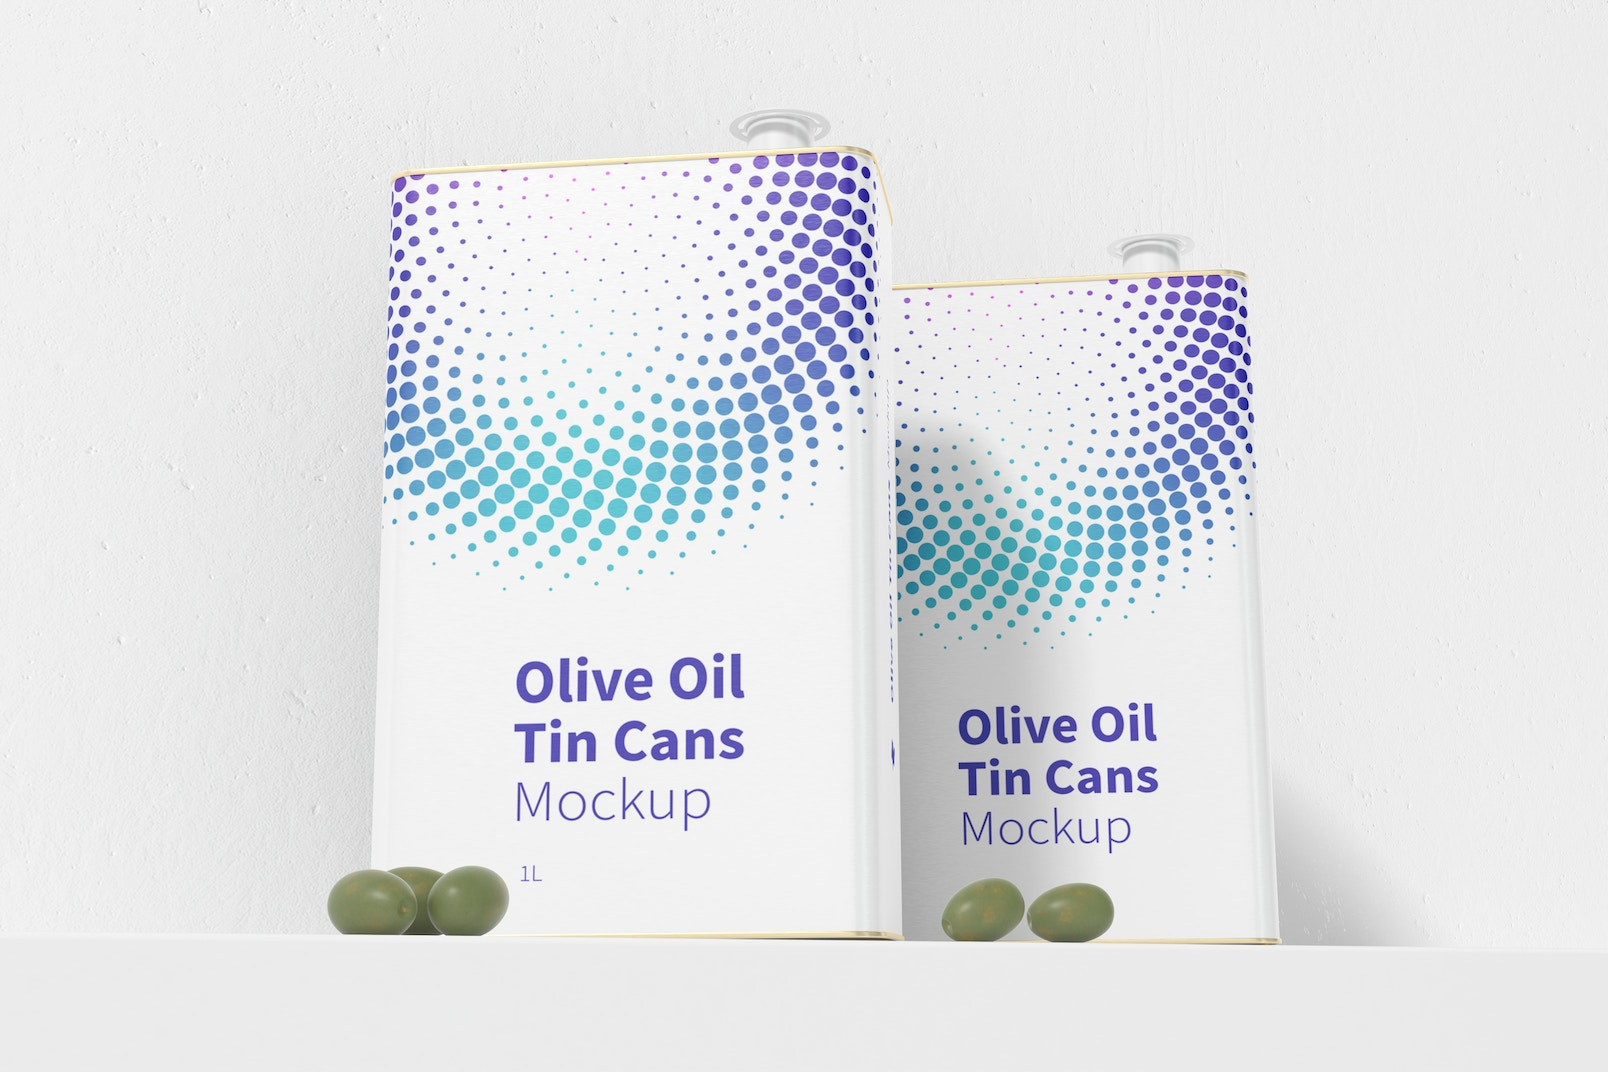 1 Liter Olive Oil Rectangular Tin Cans Mockup, Front View